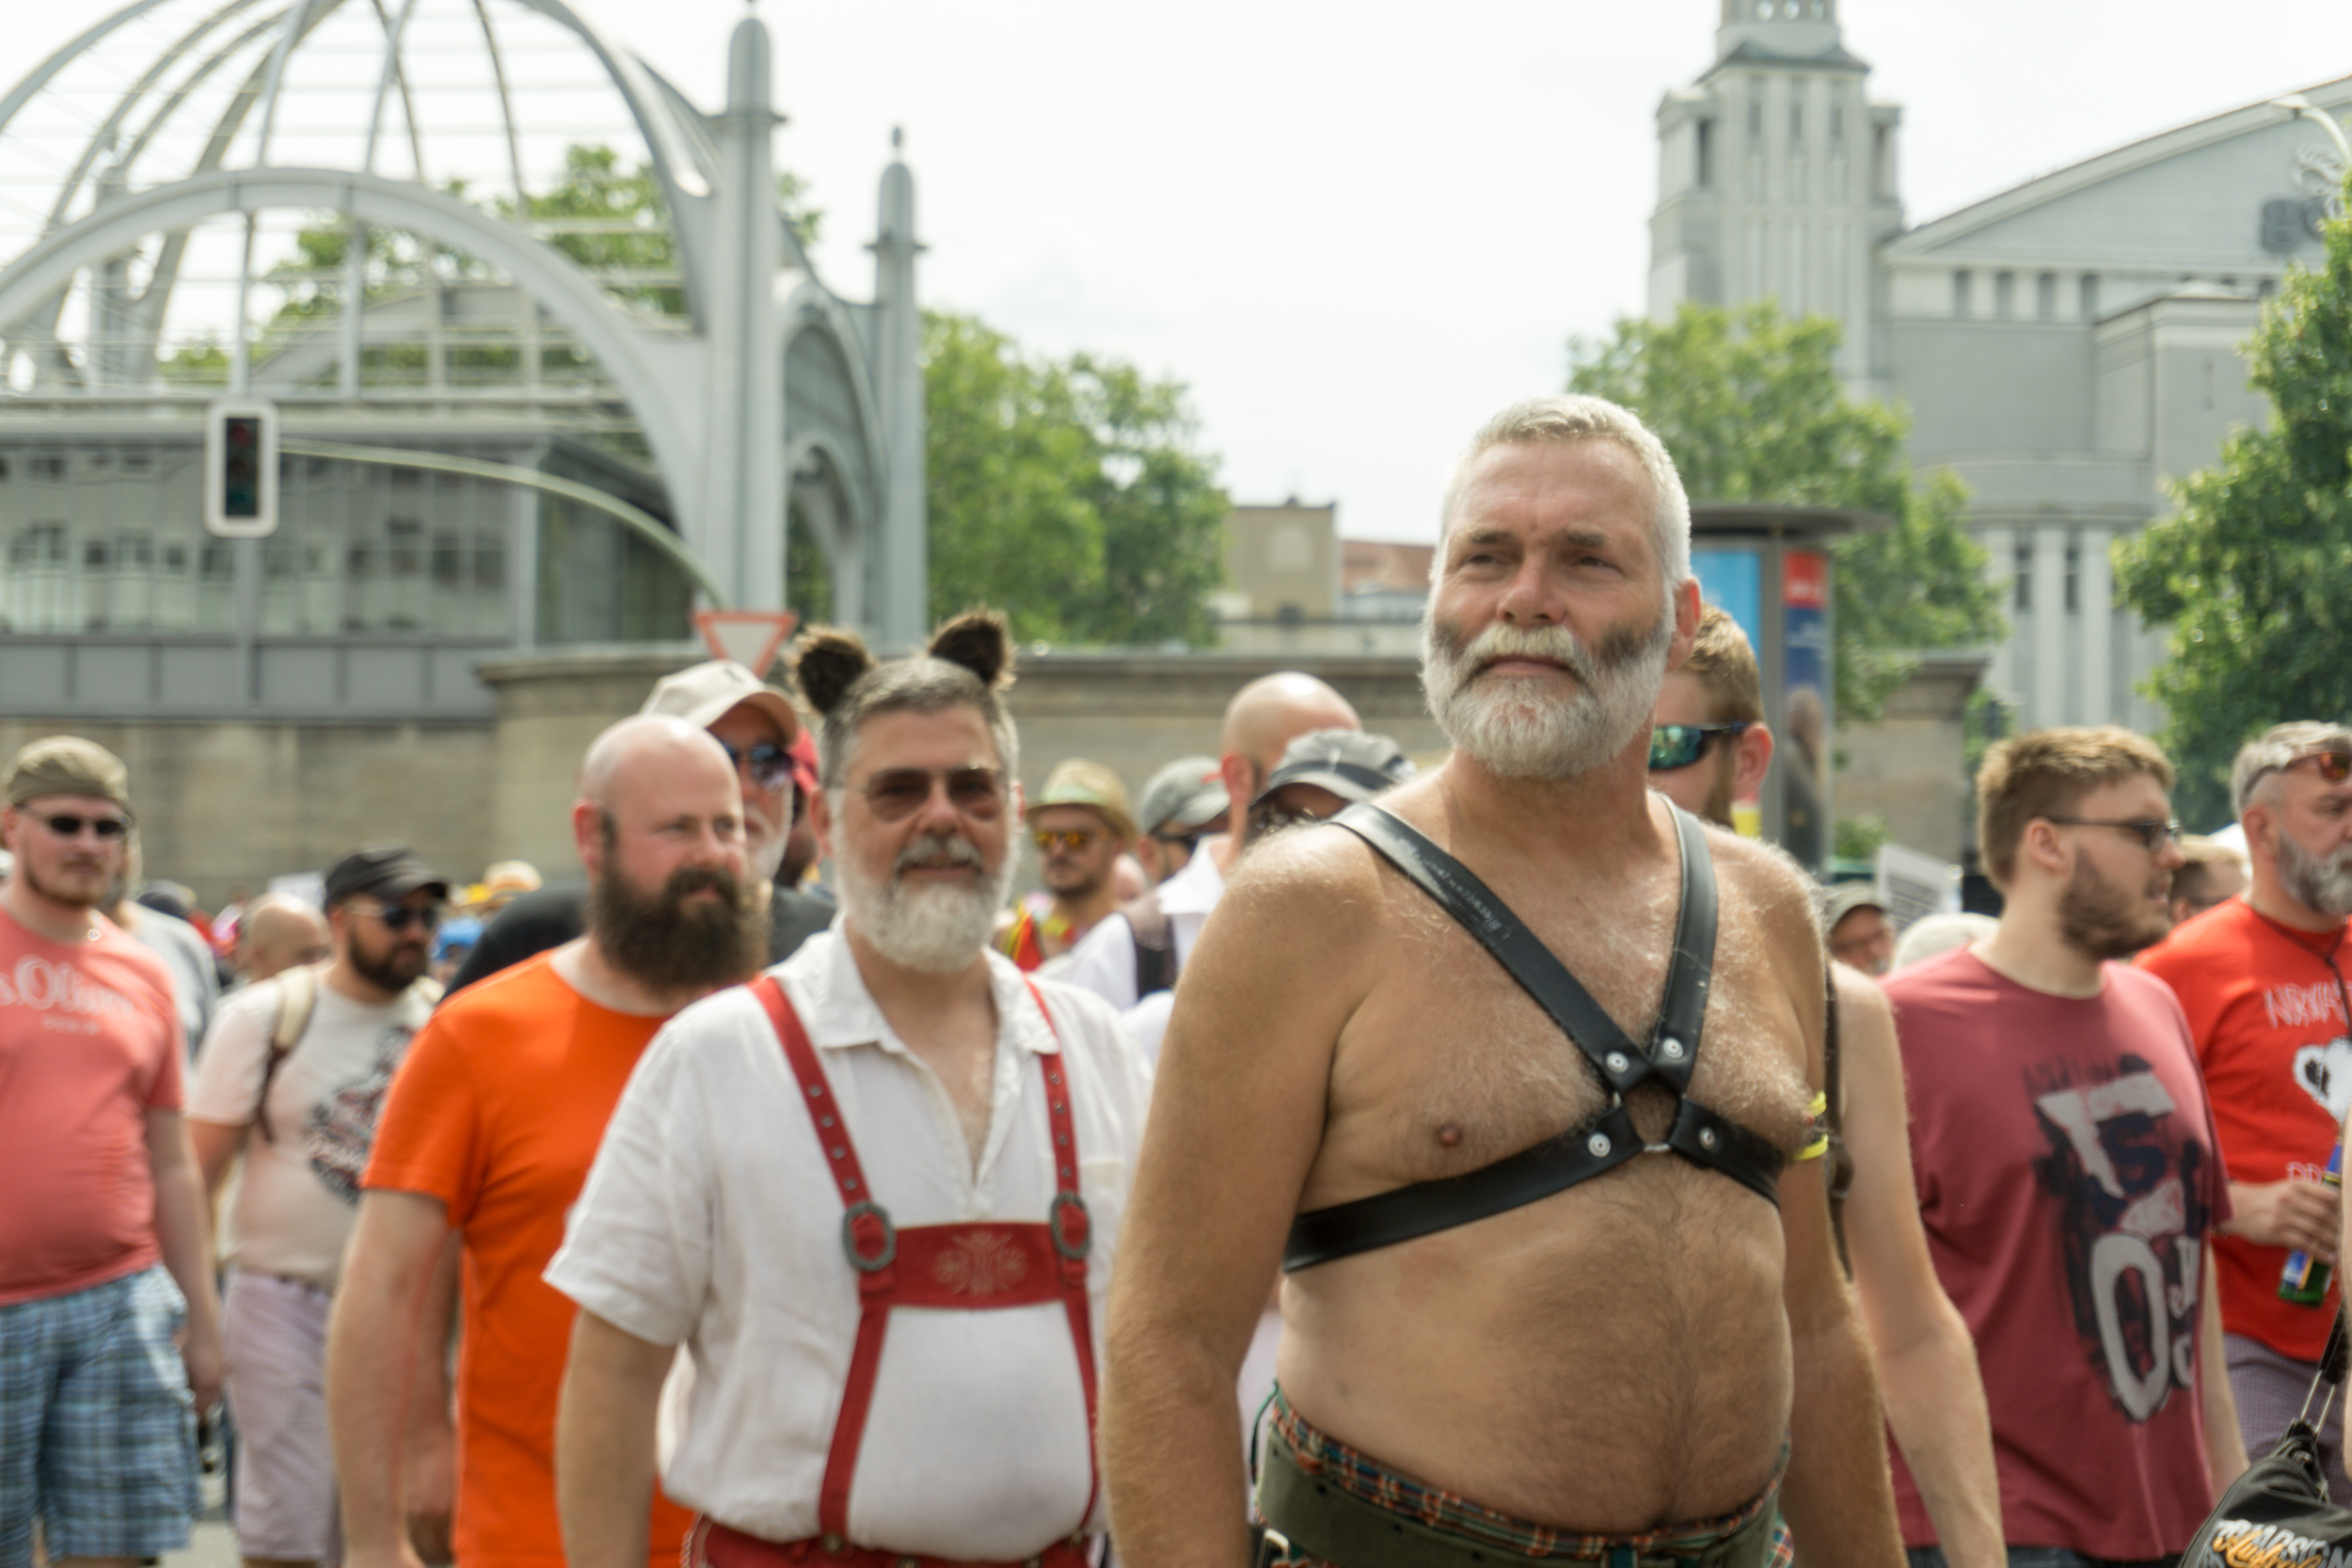 In_Pictures-Berlin_Pride-12